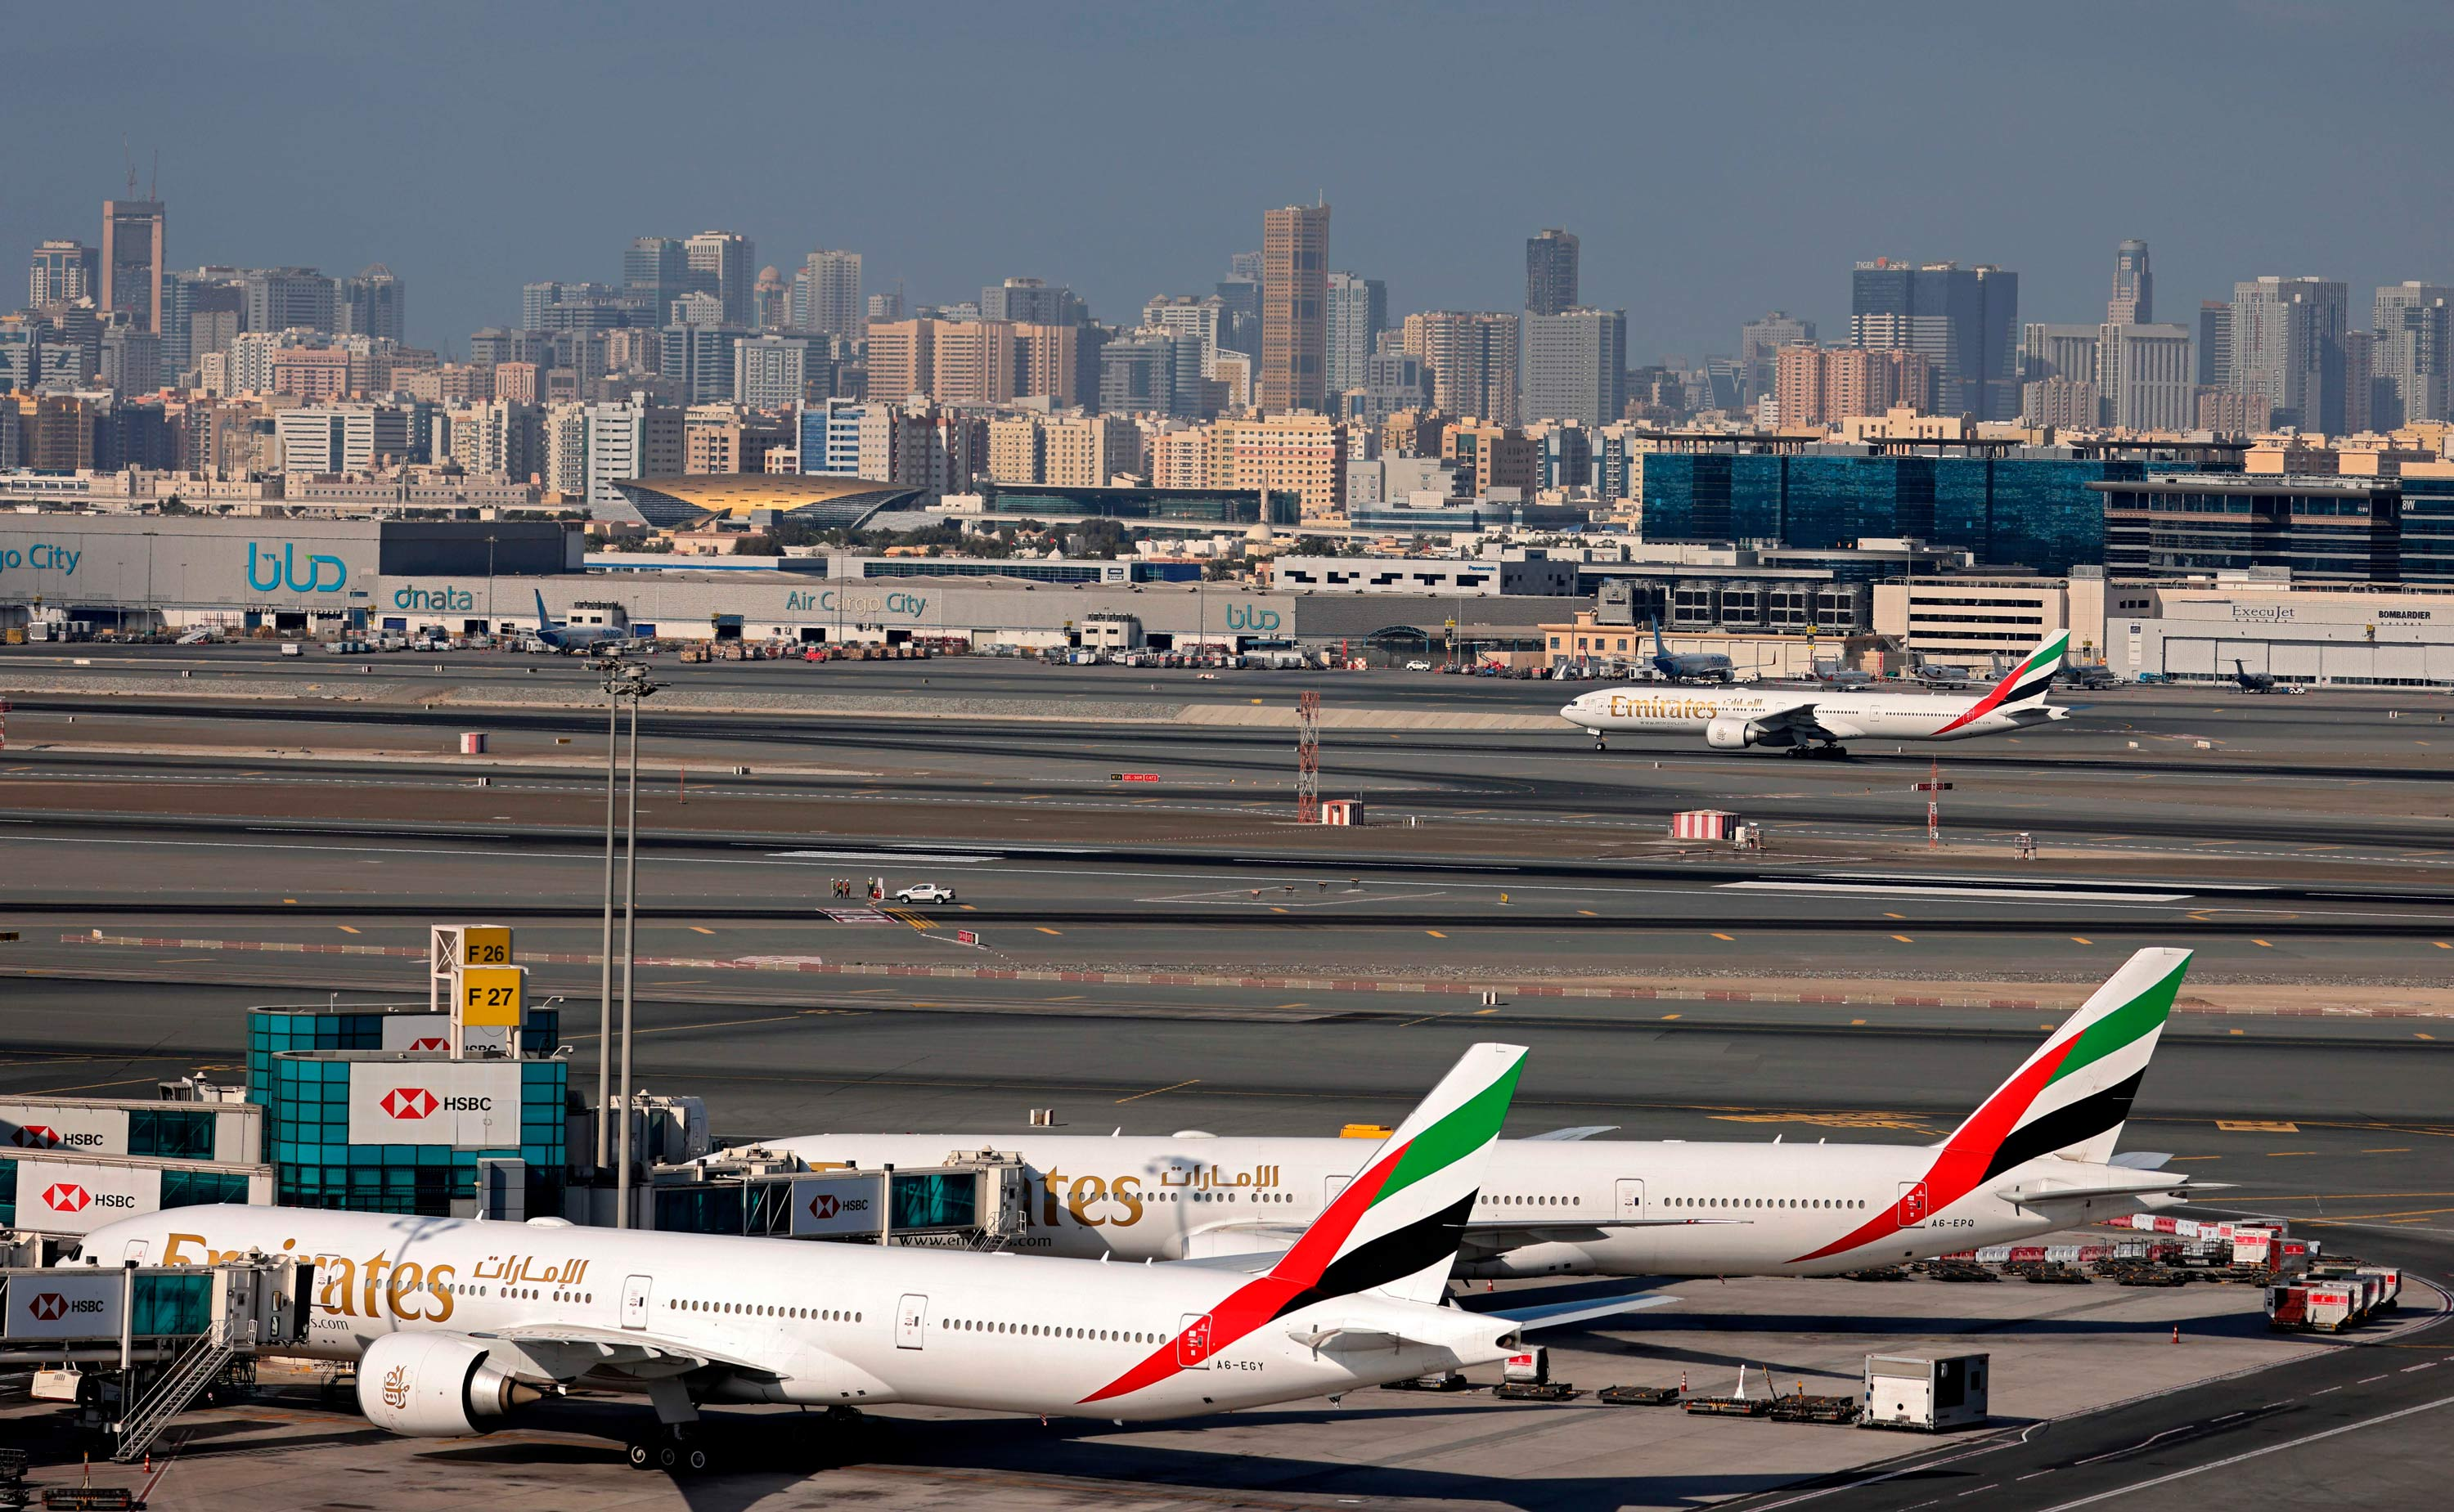 Emirates Airlines airplanes are seen at Dubai International Airport on February 1.